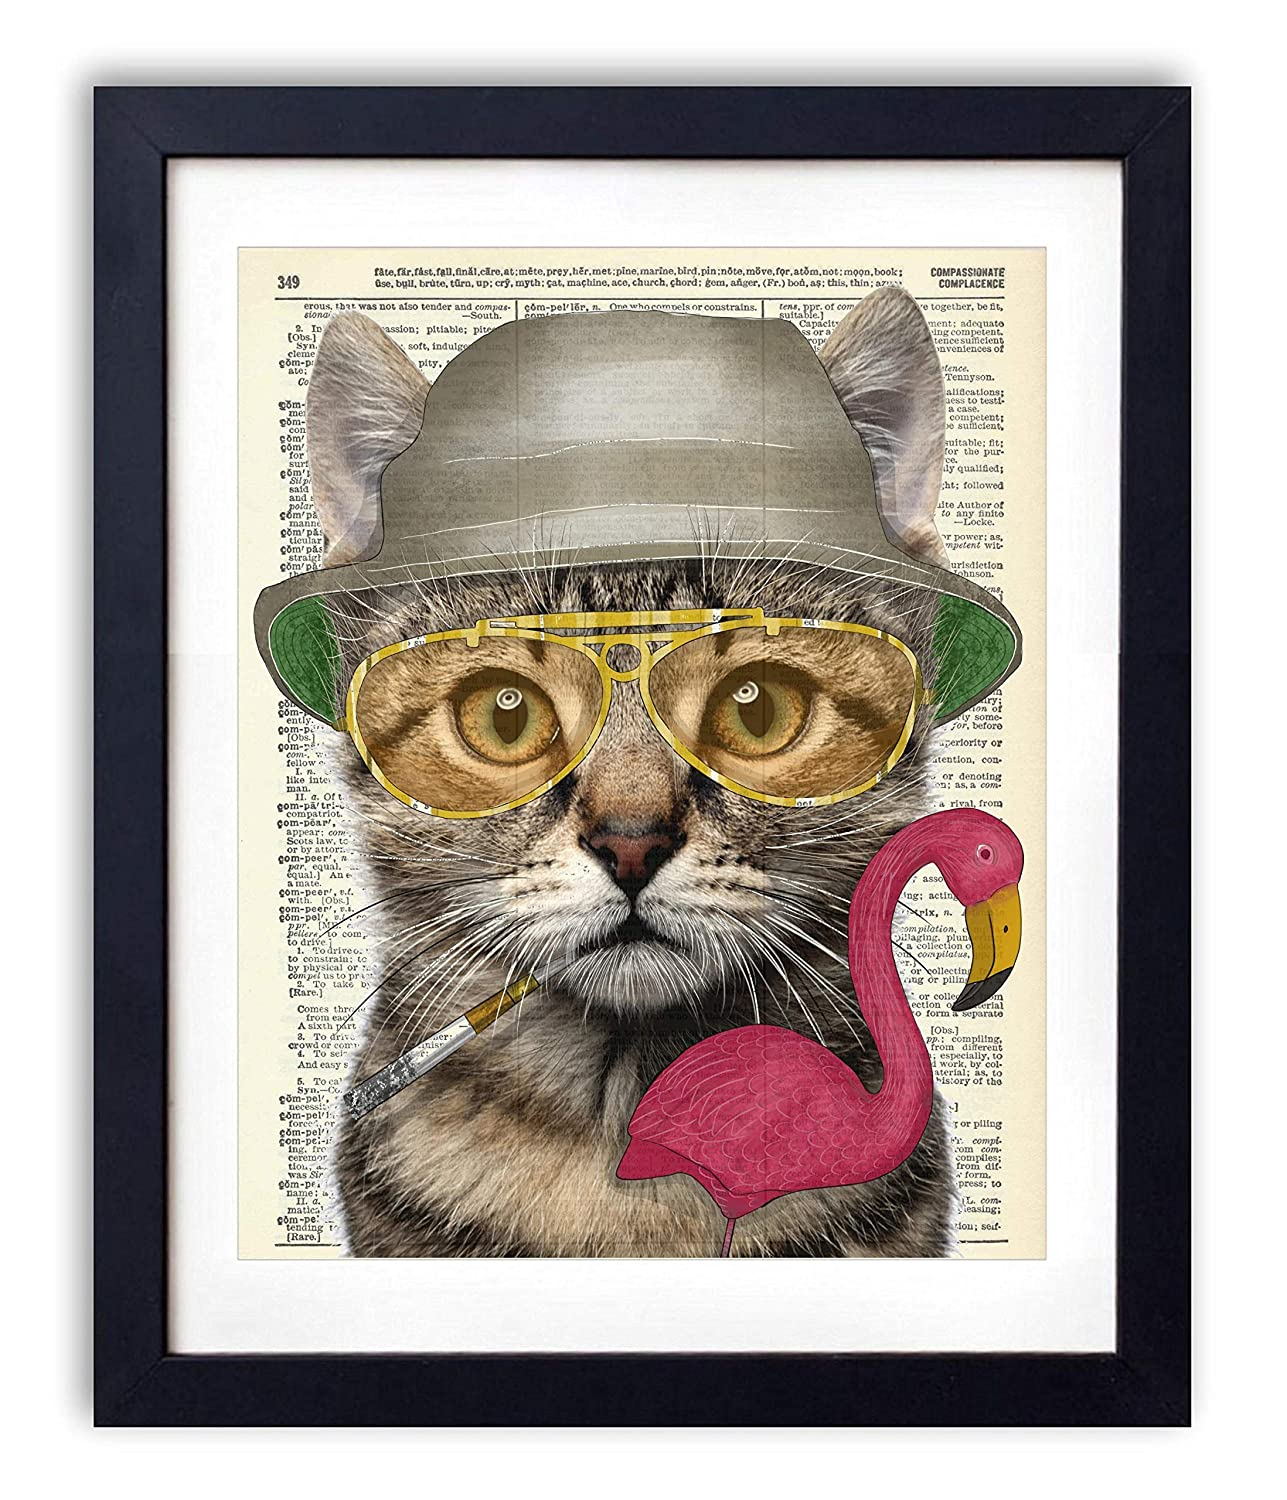 Amazon Com Hunter S Cat Home And Bedroom Wall Decor Vintage Wall Art Upcycled Dictionary Art Print Poster For Room Decor 8x10 Inches Unframed Handmade